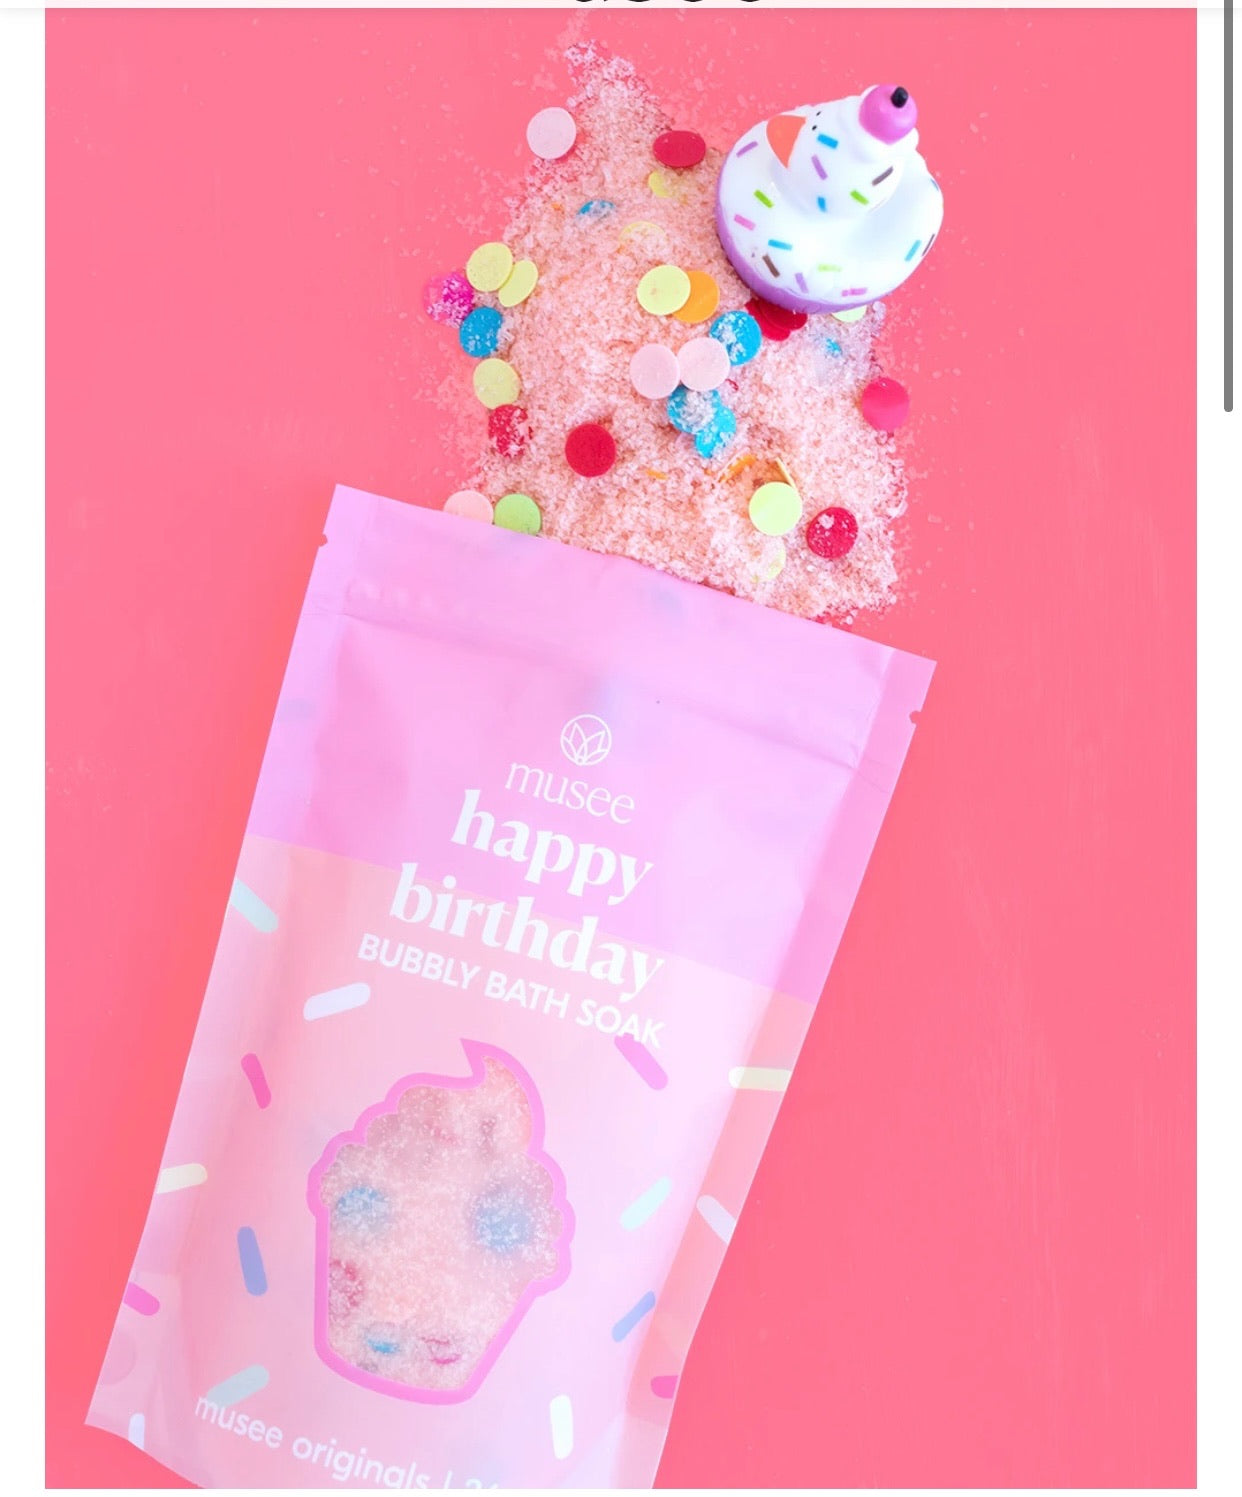 Musee Large Bag of Happy Birthday Cotton Candy Bubbly Bath Soak